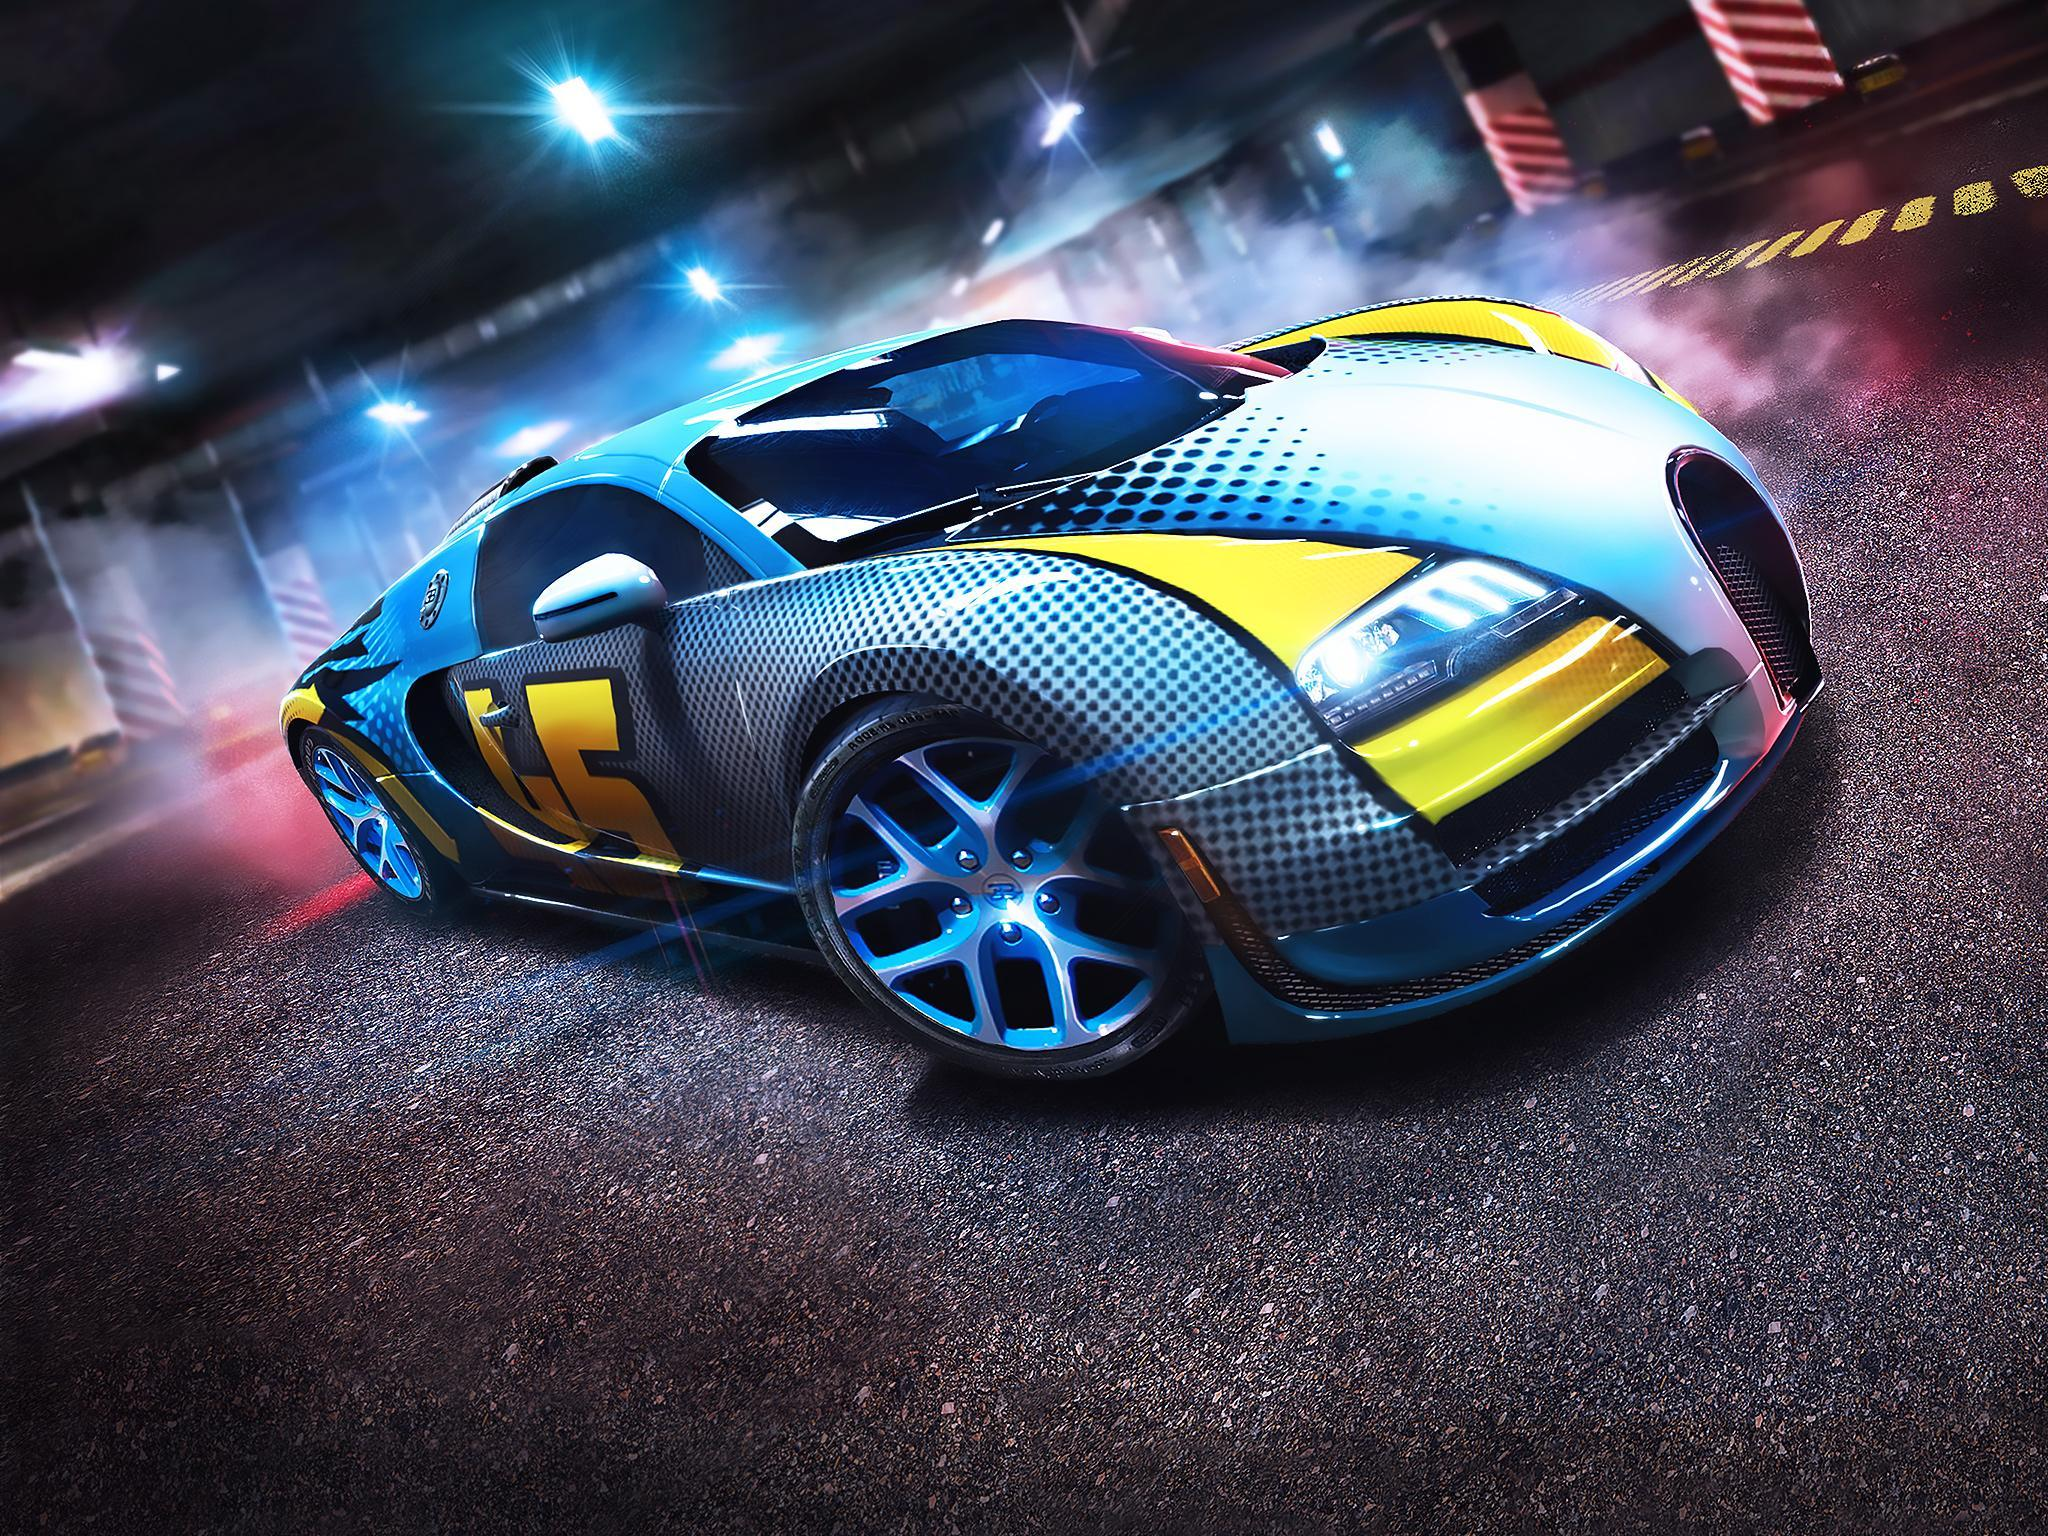 Koenigsegg One for Sale Luxury asphalt 8 Airborne Apk Download the Best android 3d